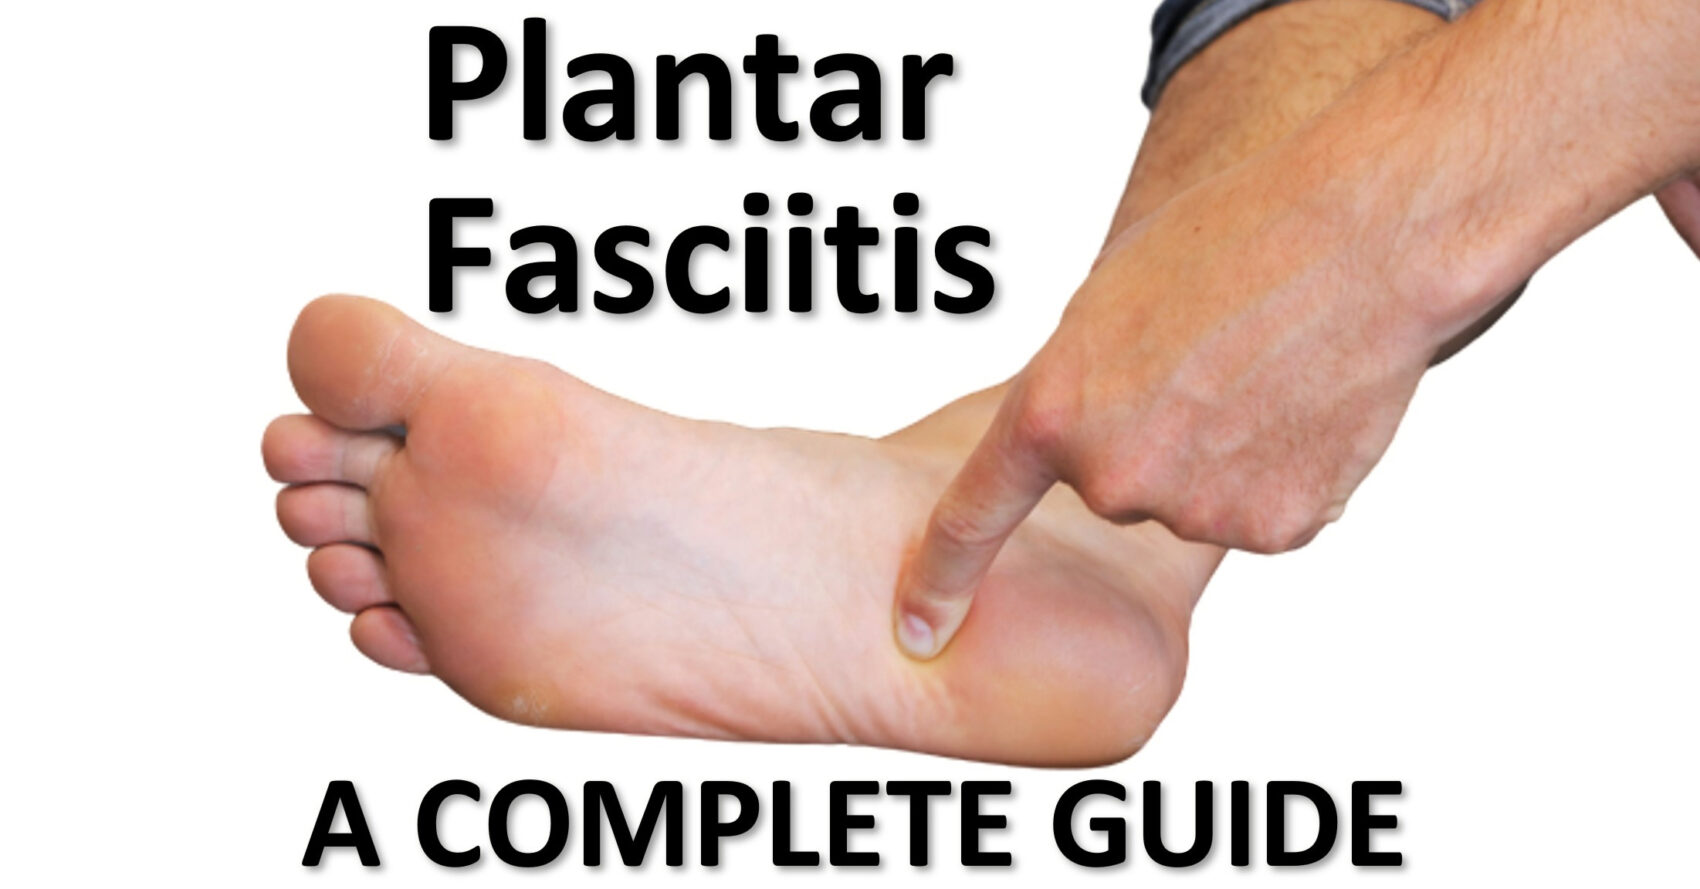 hand pointing to the plantar fasciia insertion point in the foot